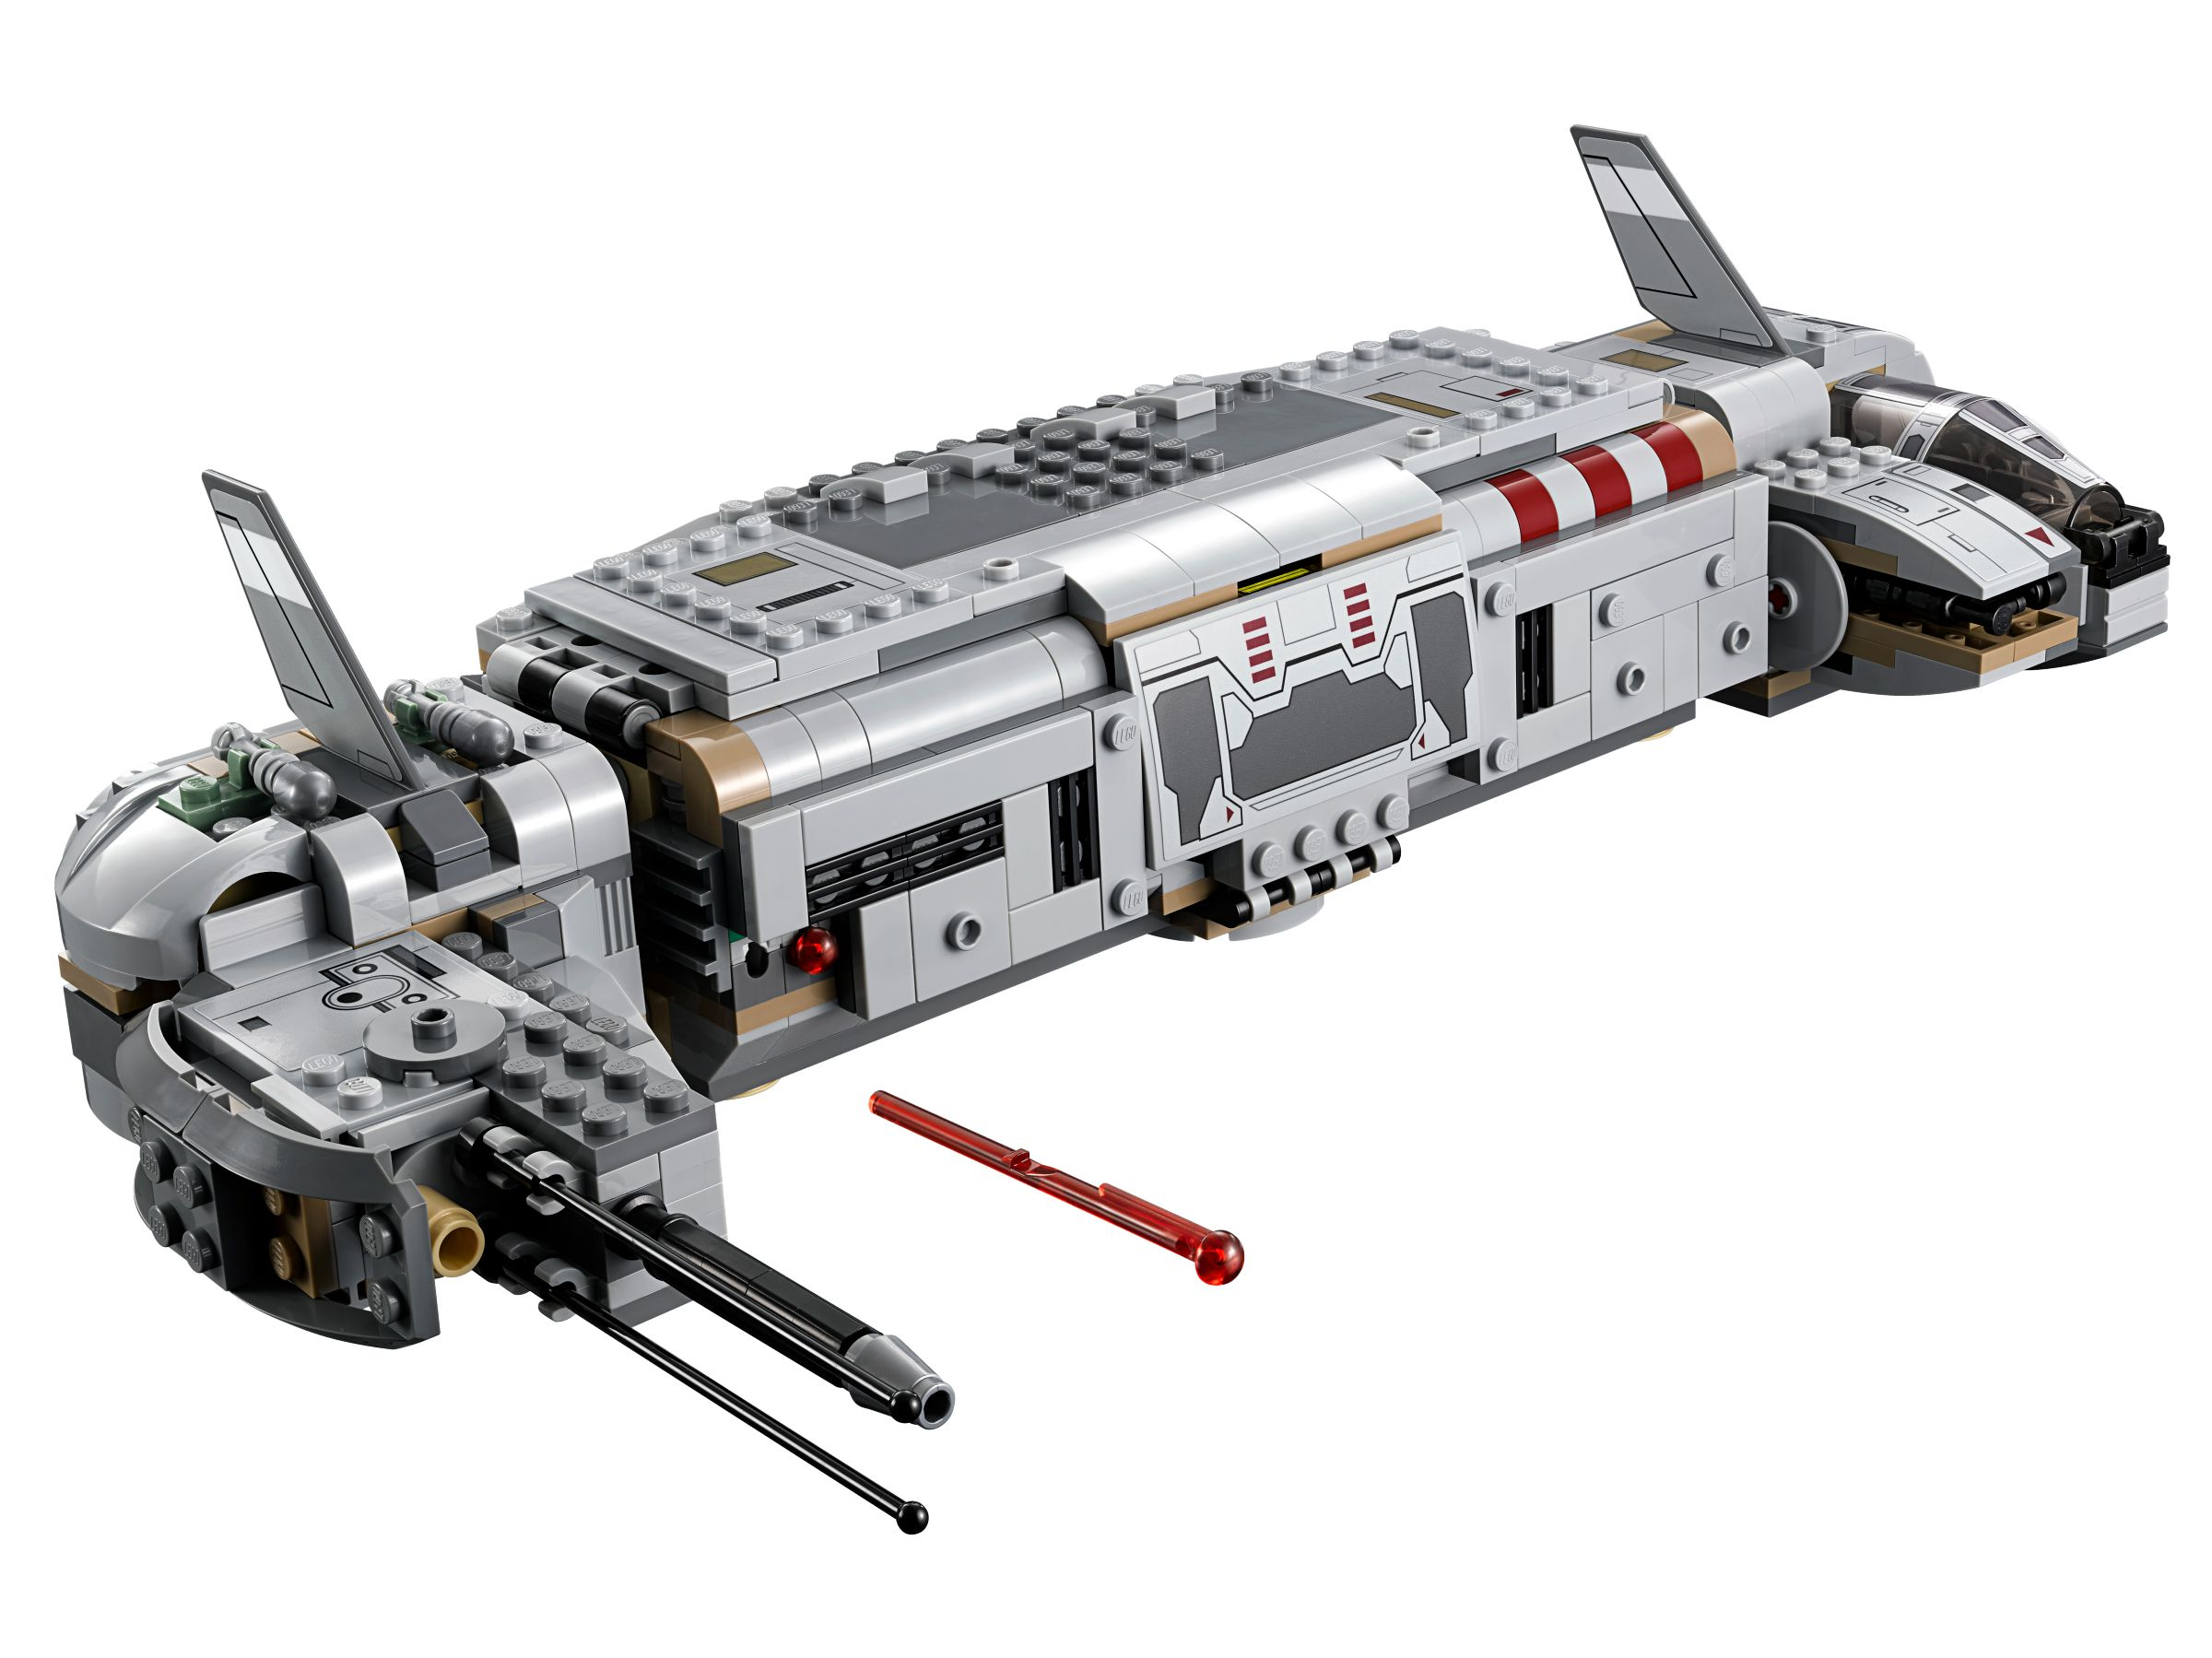 LEGO Star Wars 75140 Resistance Troop Transporter LEGO_75140_alt7.jpg